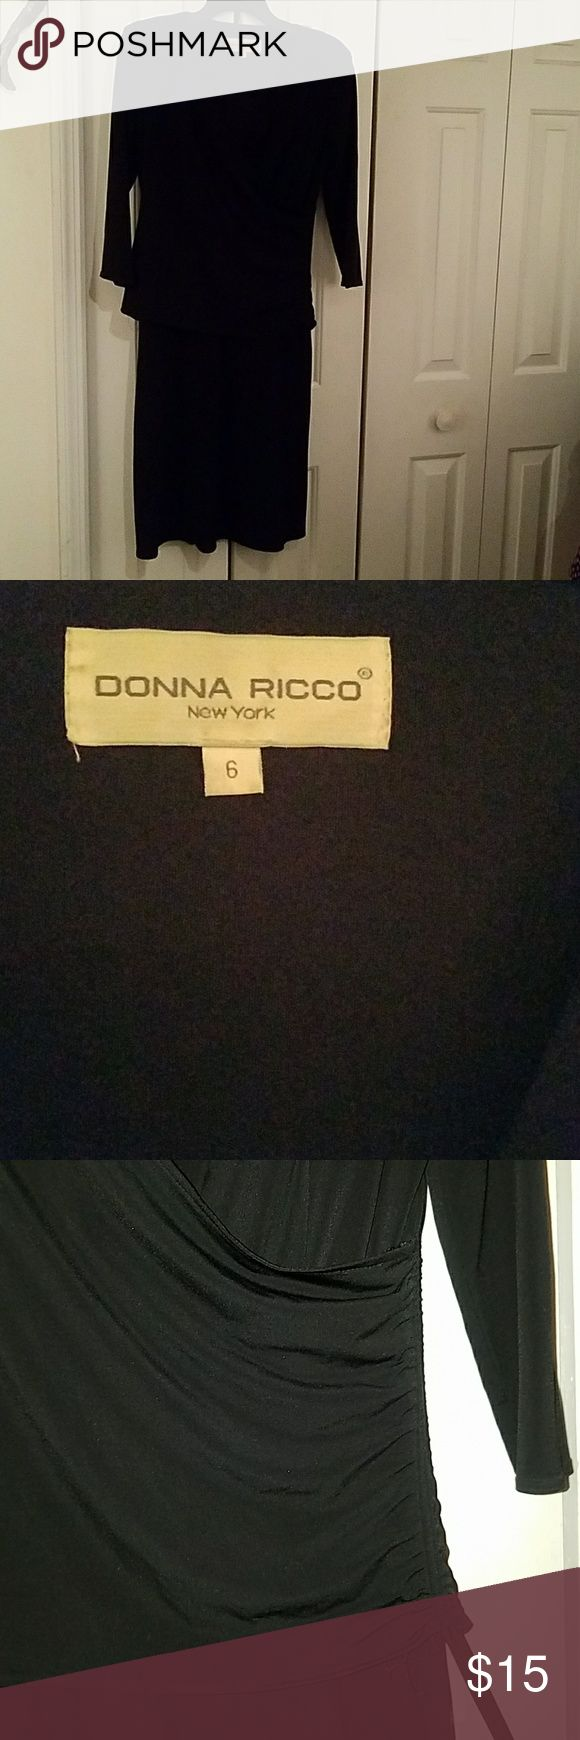 Donna Ricco Black Ruched Dress Says size 6 but could fit a larger size depending on your proportions - see measurements. Has adjustable ruching with string on right side. Donna Ricco Dresses